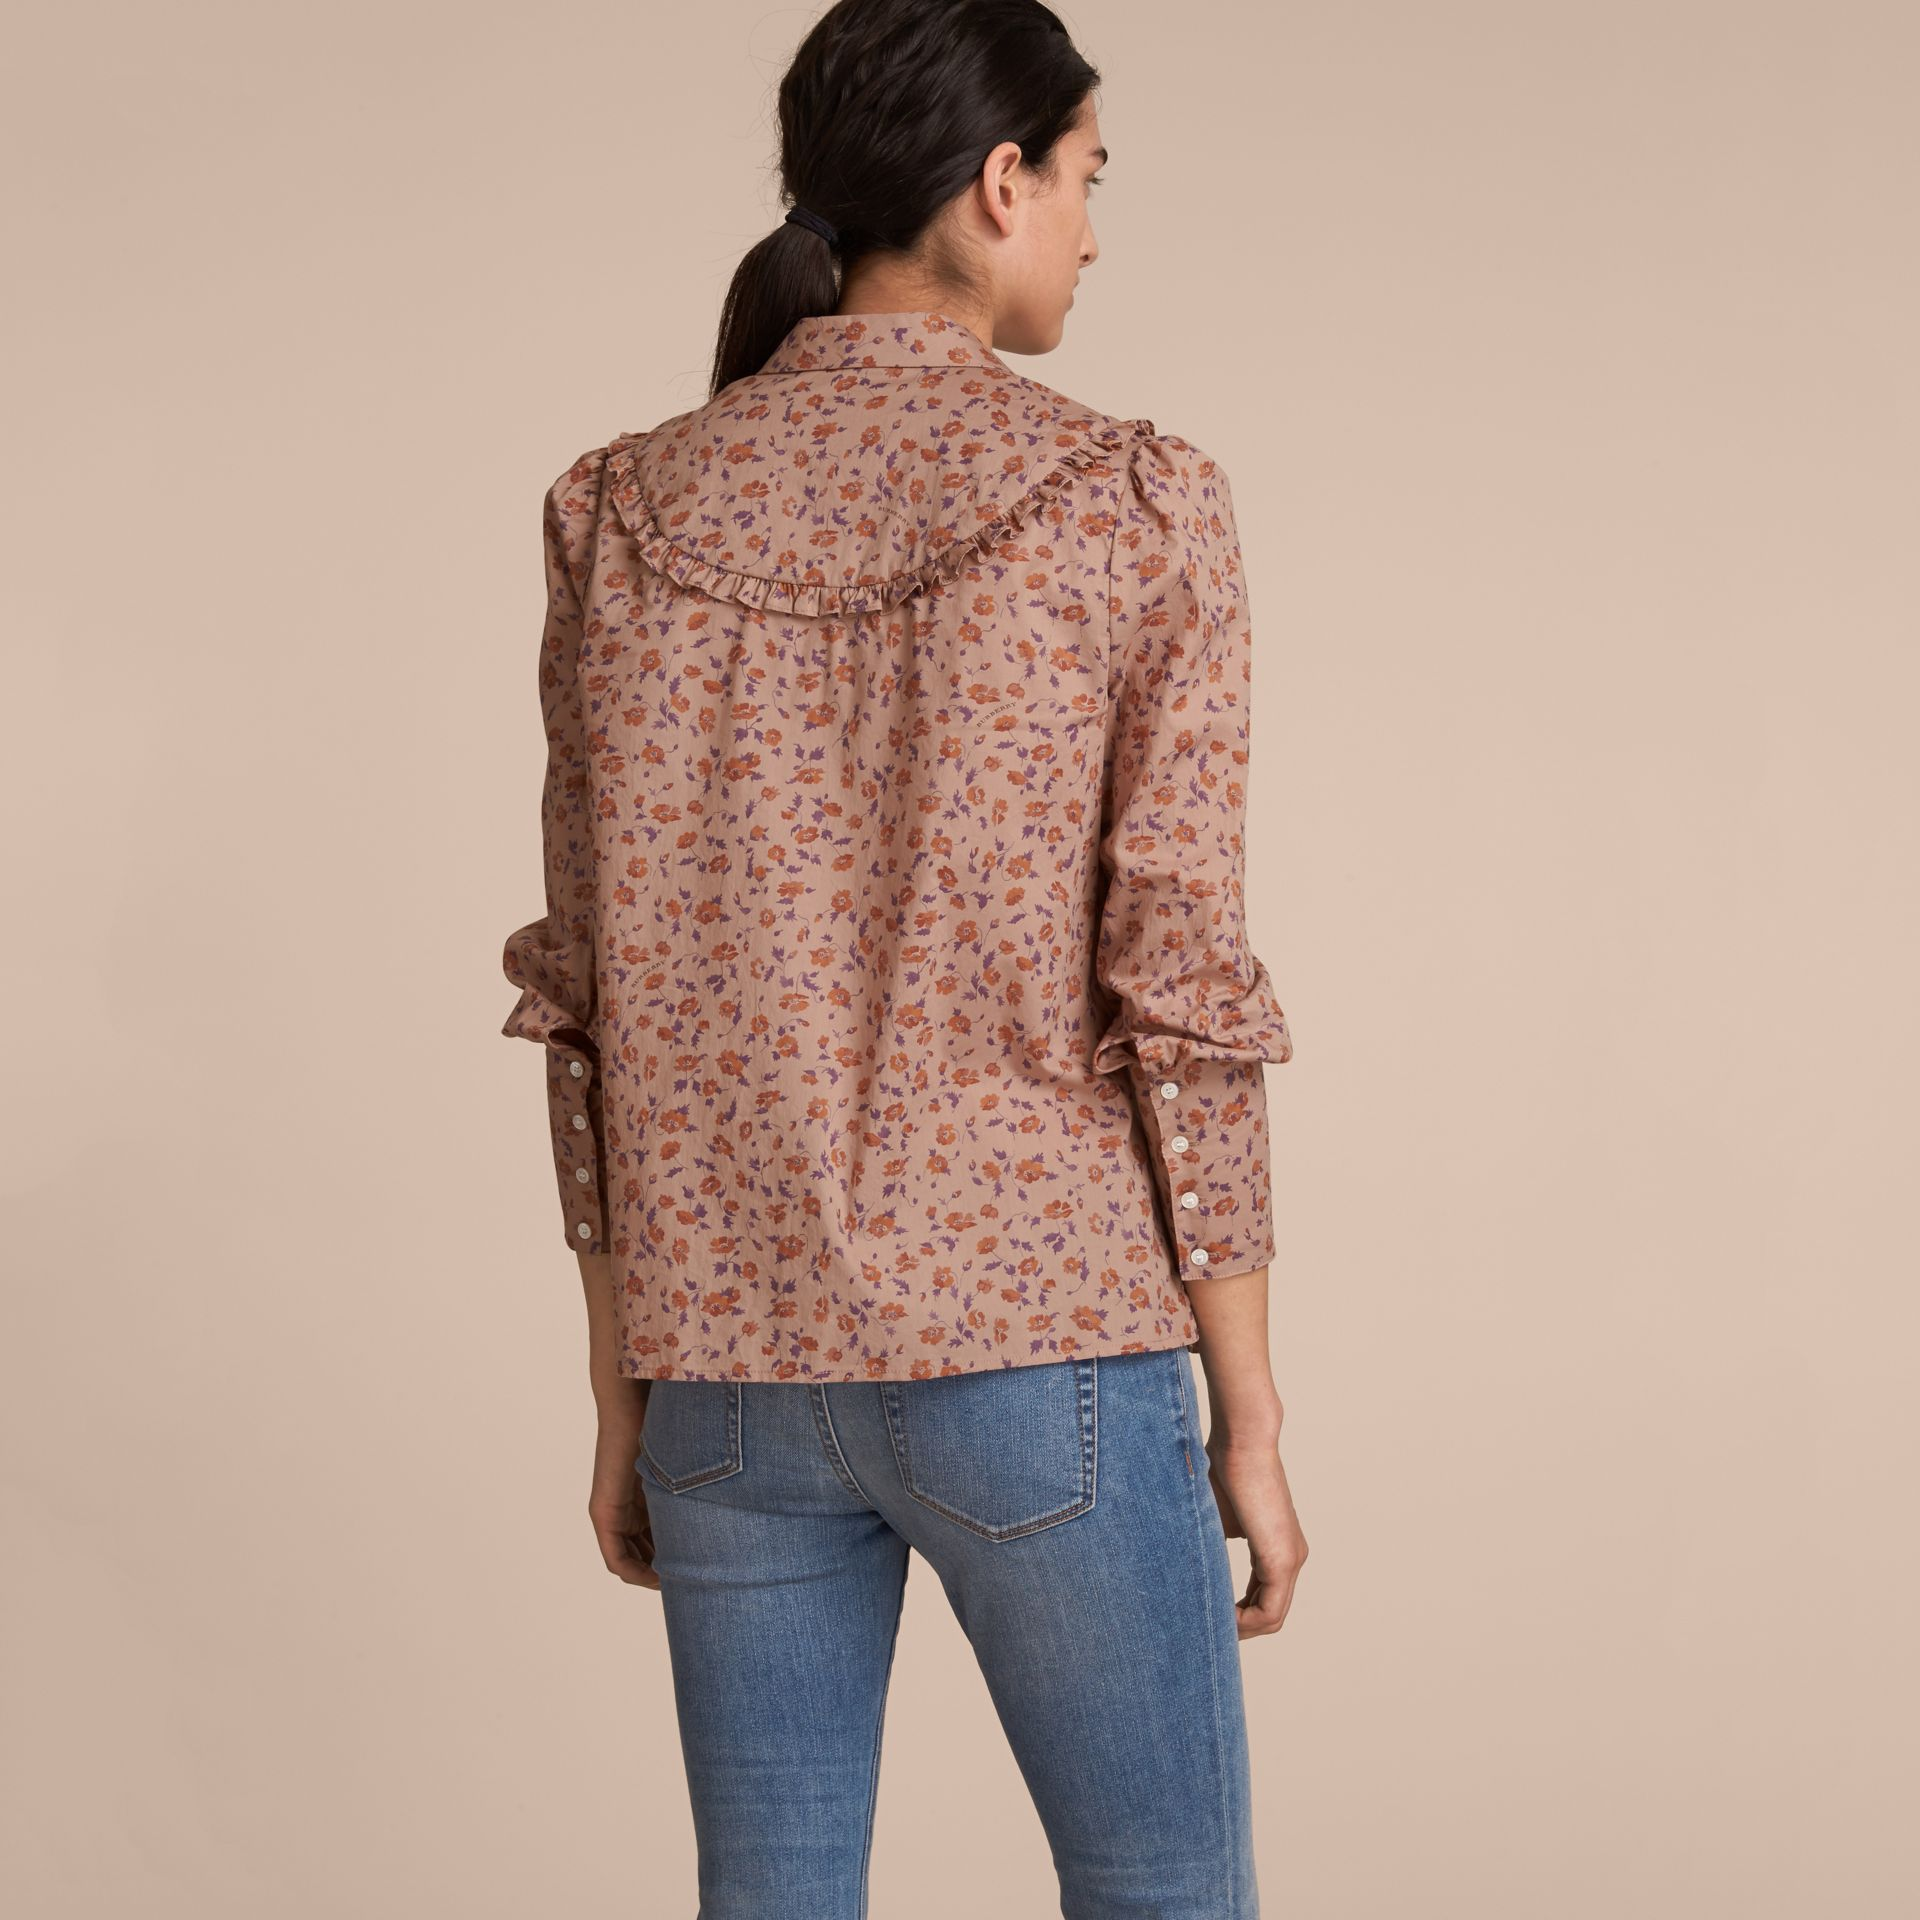 Ruffle Yoke Floral Print Cotton Shirt in Light Copper - Women | Burberry - gallery image 3